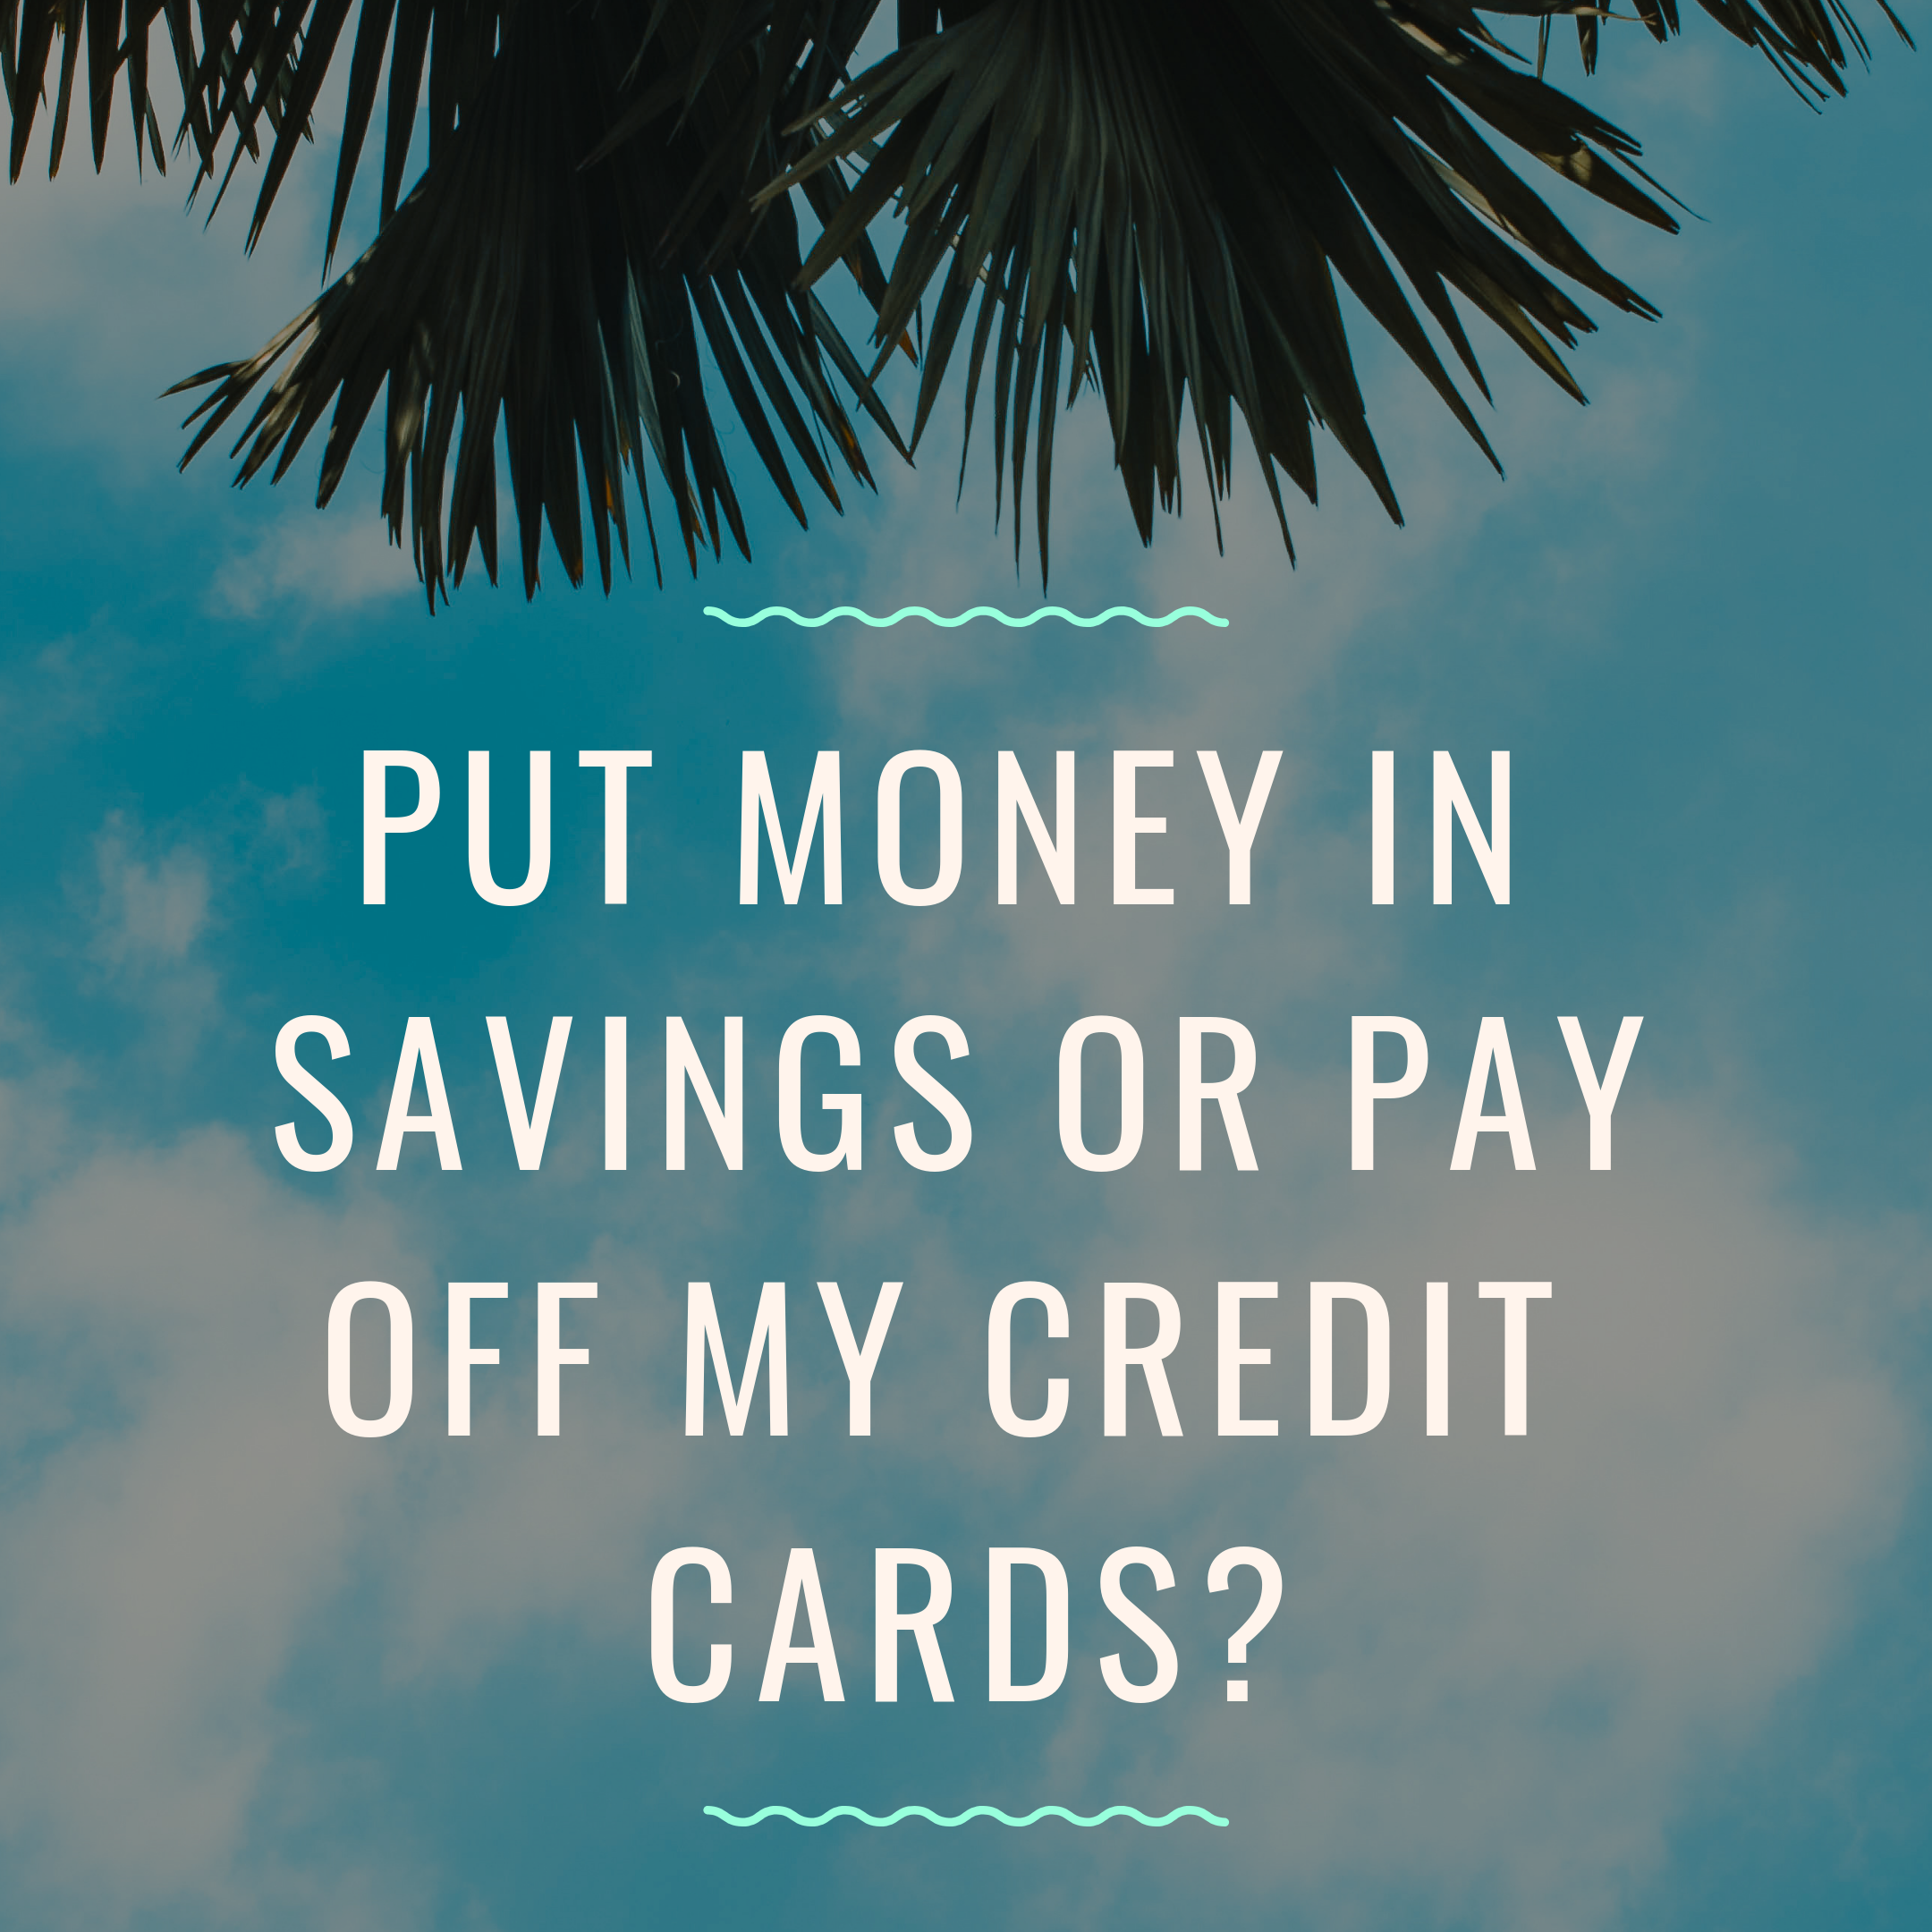 Do I Pay off Debt OR put Money in Savings?